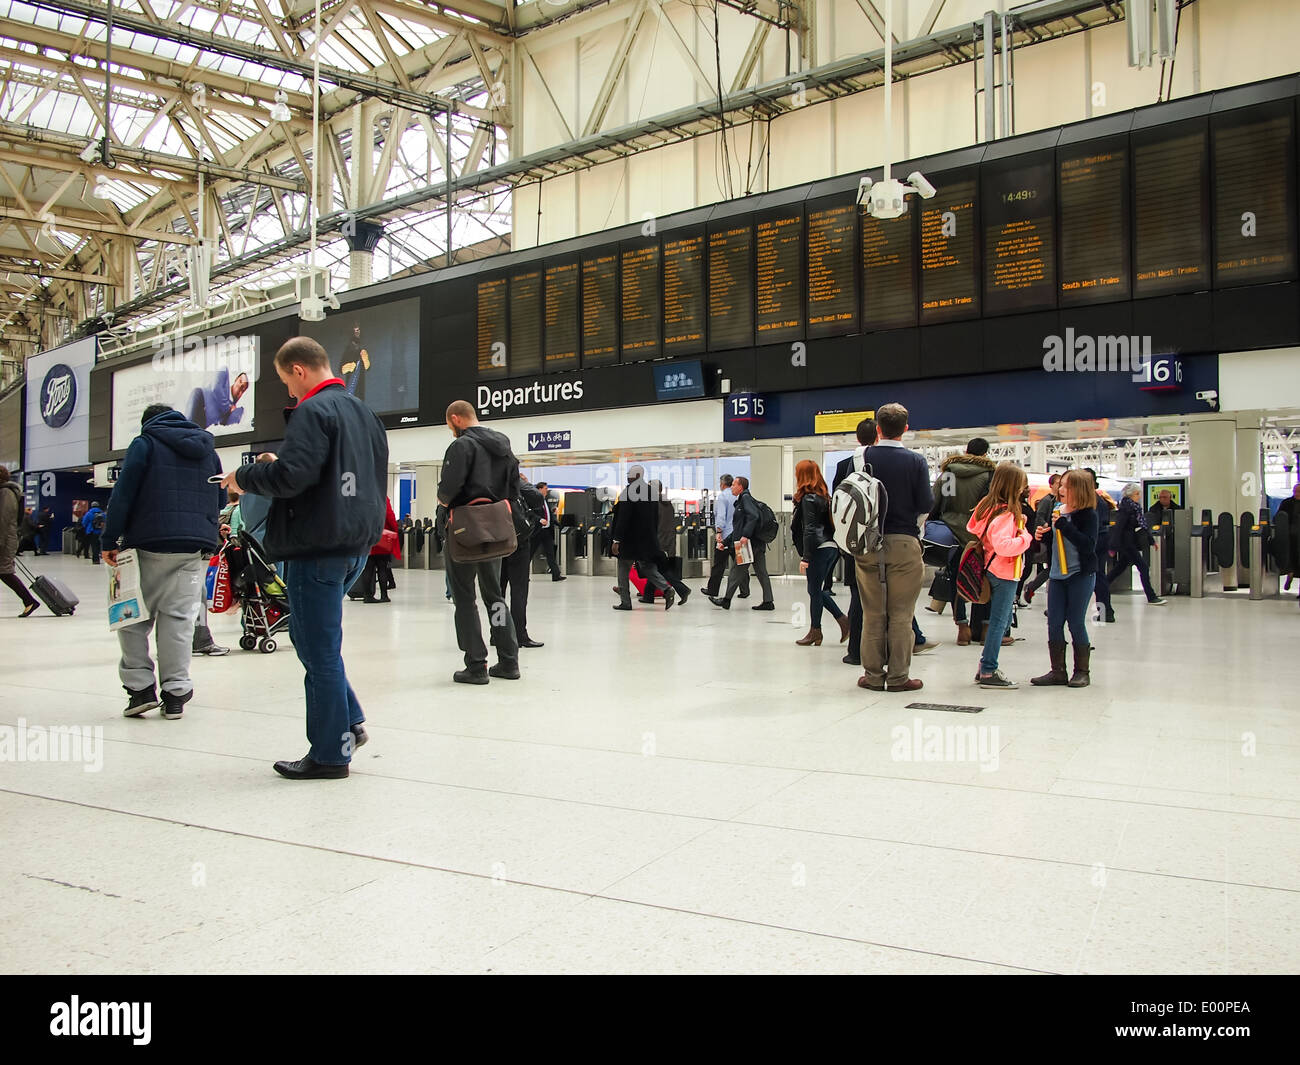 The main concourse and information boards of Waterloo station, London, England - Stock Image